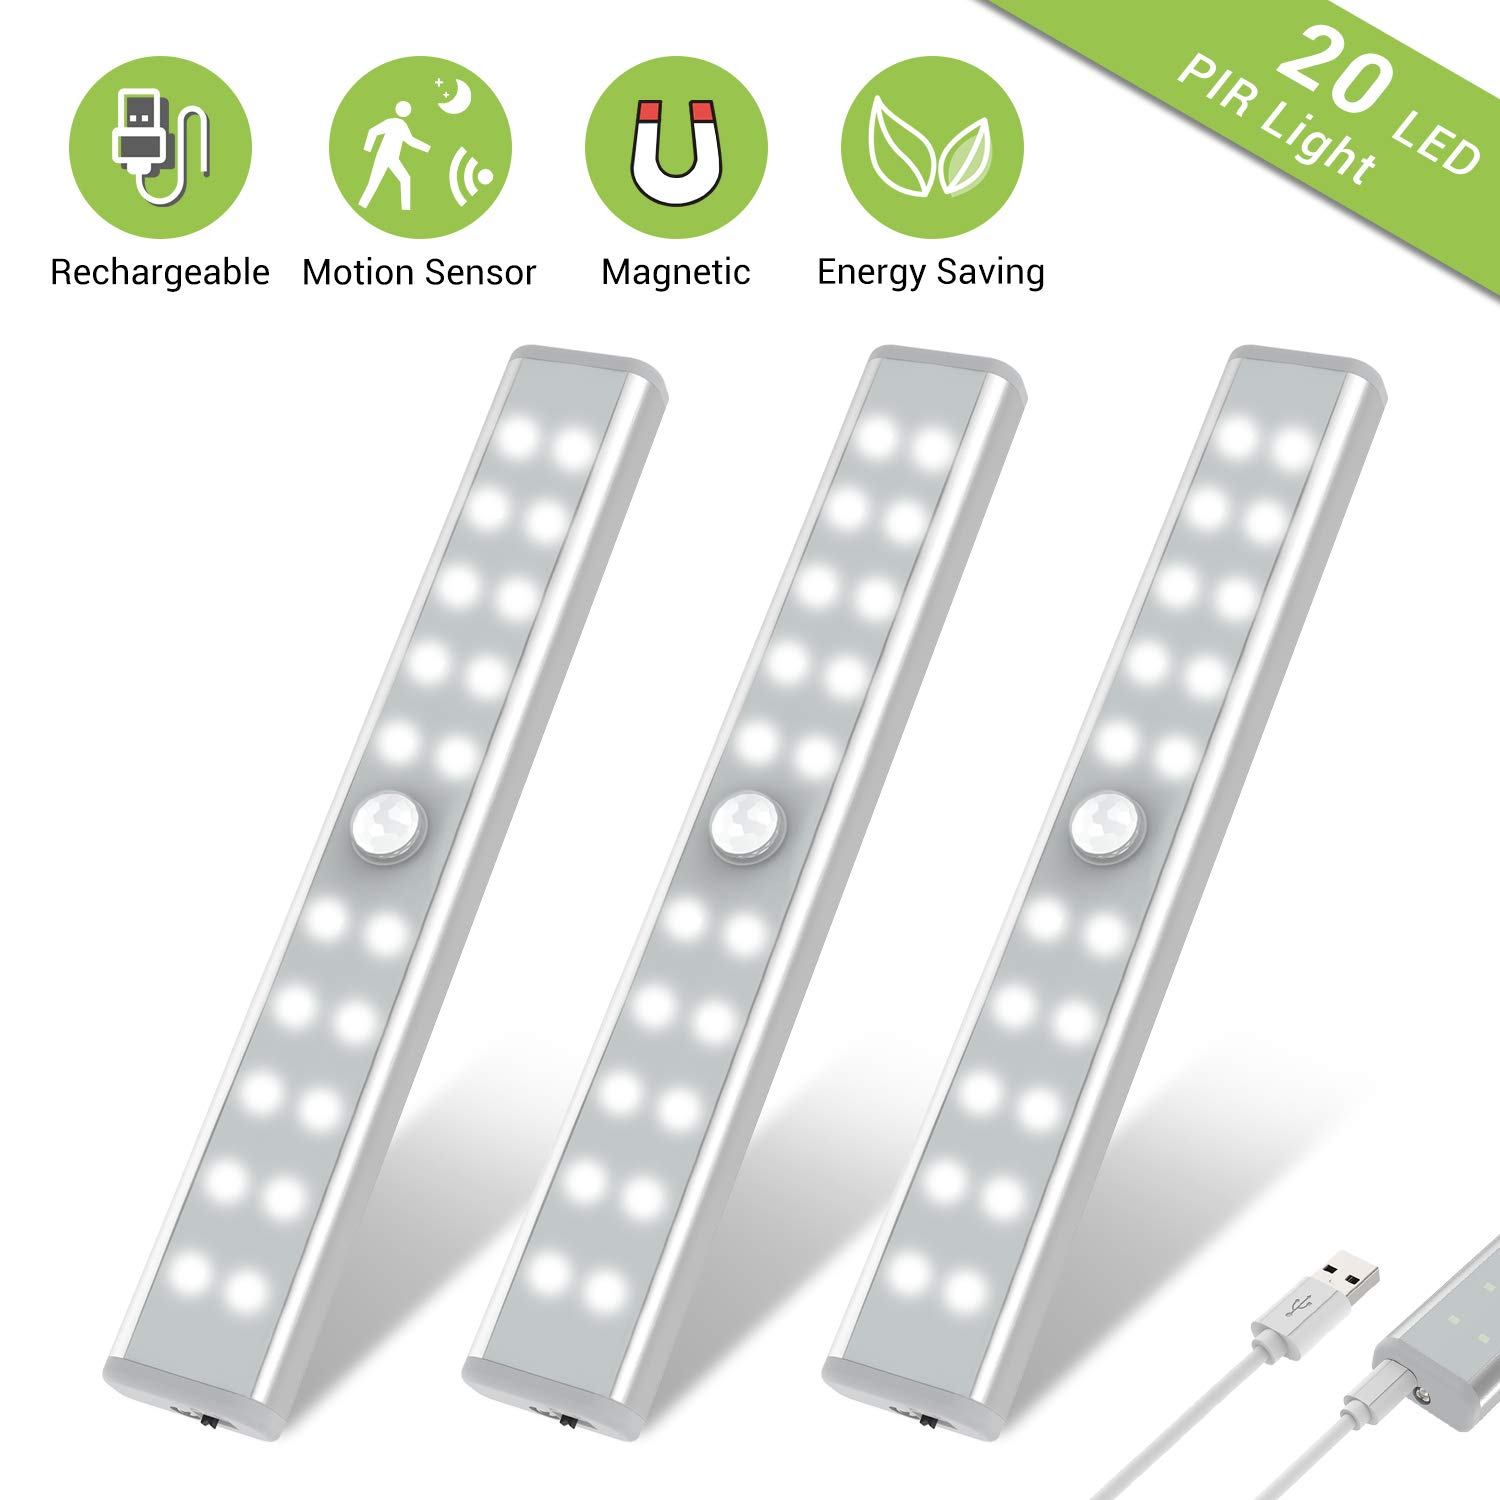 Wardrobe Light, OxyLED Motion Sensor Closet Lights, 20 LED Under Cabinet Lights, USB Rechargeable Stick-on Stairs Step Light Bar, LED Night Light, Safe Light with Magnetic Strip, 3-Pack, T-02U by OxyLED